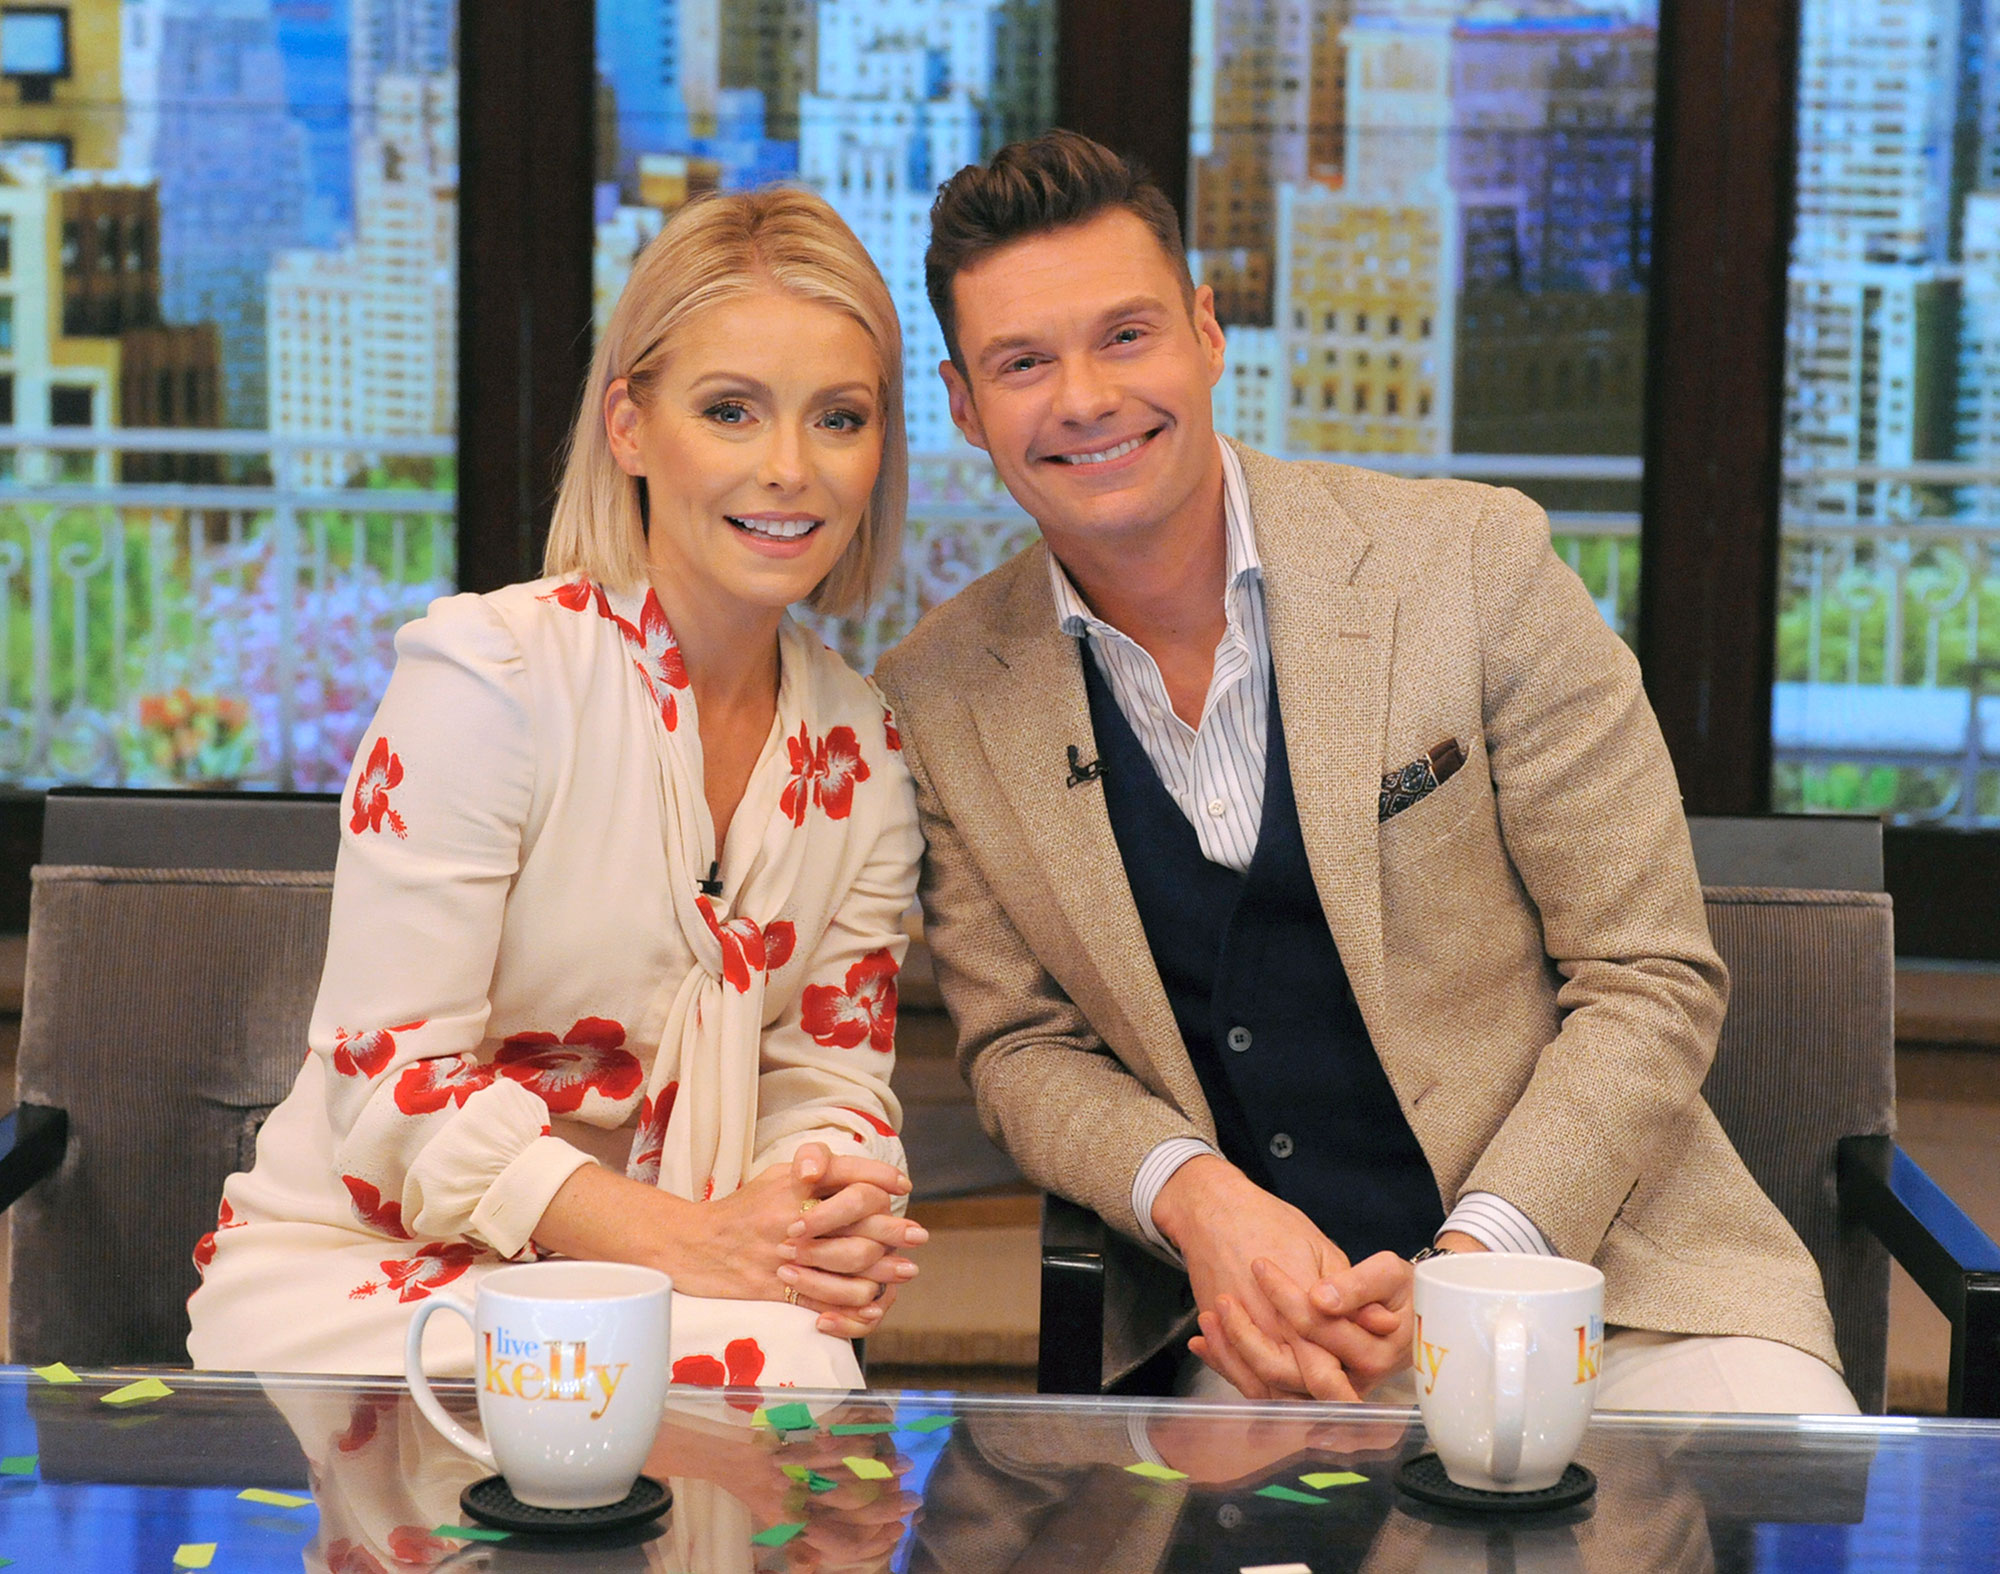 """kelly-ripa-furious-with-ryan-seacrest-sources-say-she-is-over-ryan-spreading-himself-too-thin"""